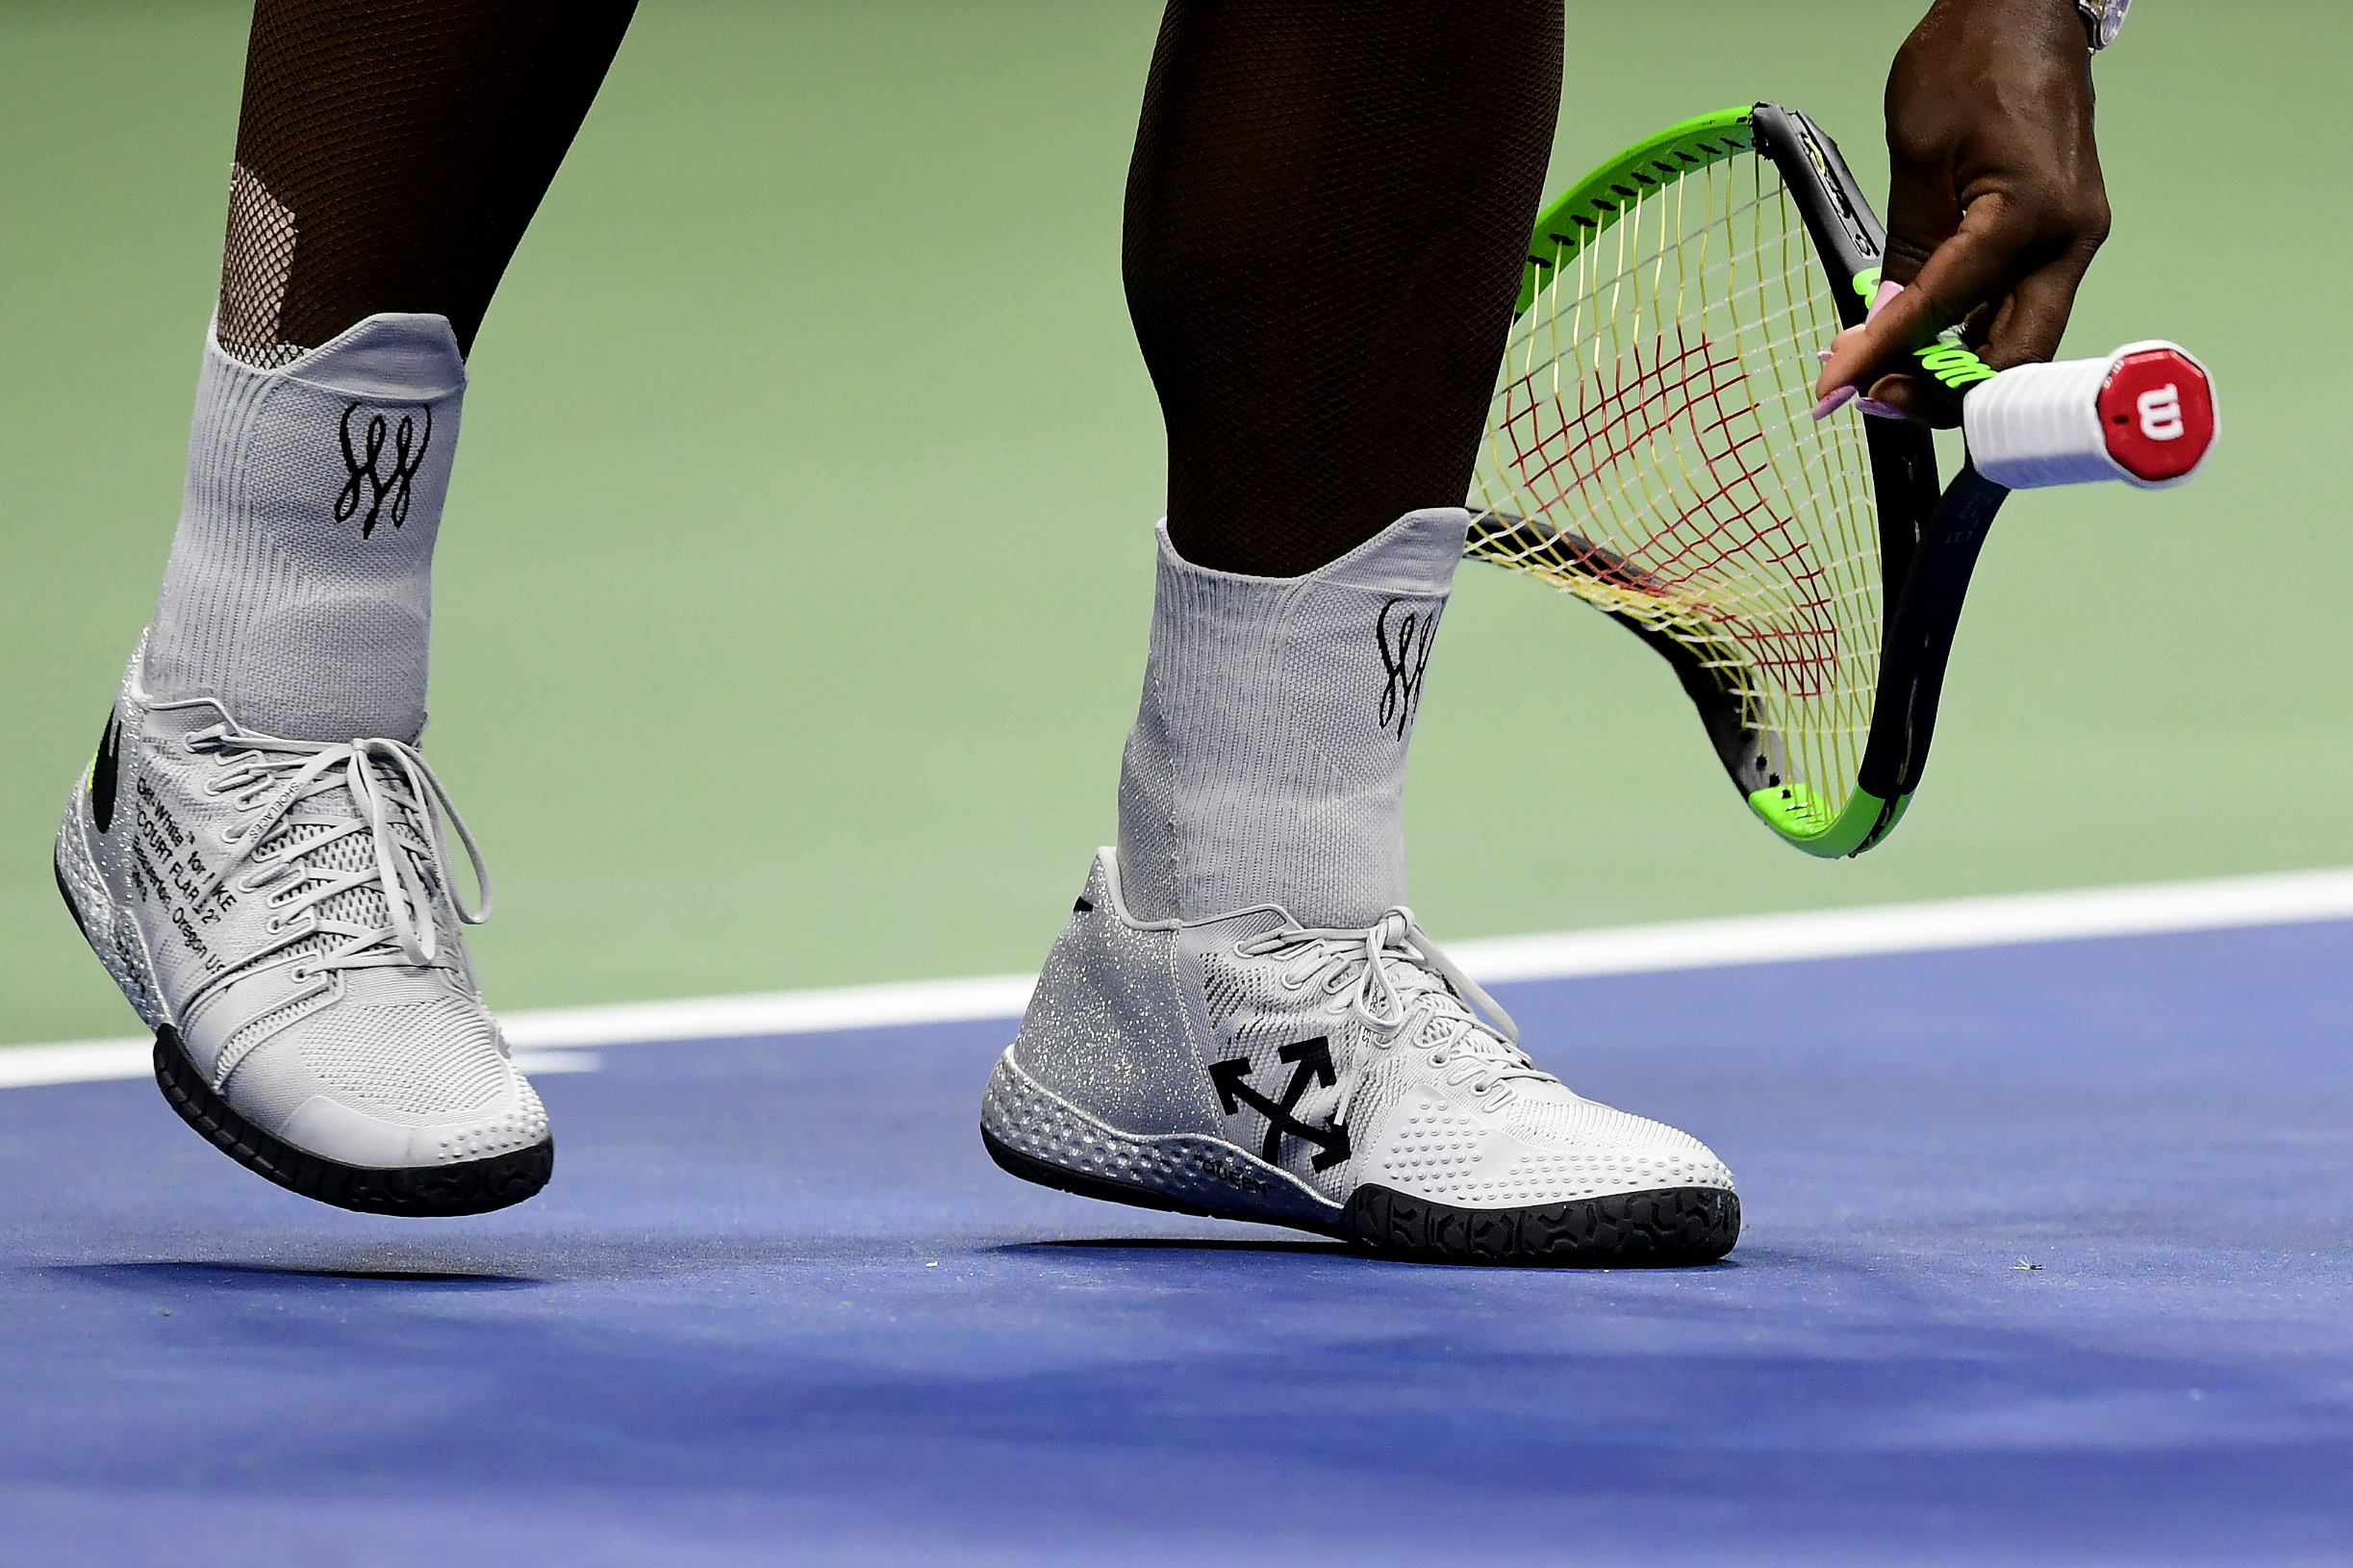 Serena Williams of the United States after smashing her racket during her Women's Singles finals match against Naomi Osaka of Japan on Day Thirteen of the 2018 US Open at the USTA Billie Jean King National Tennis Center on September 8, 2018 in the Flushing neighborhood of the Queens borough of New York City.